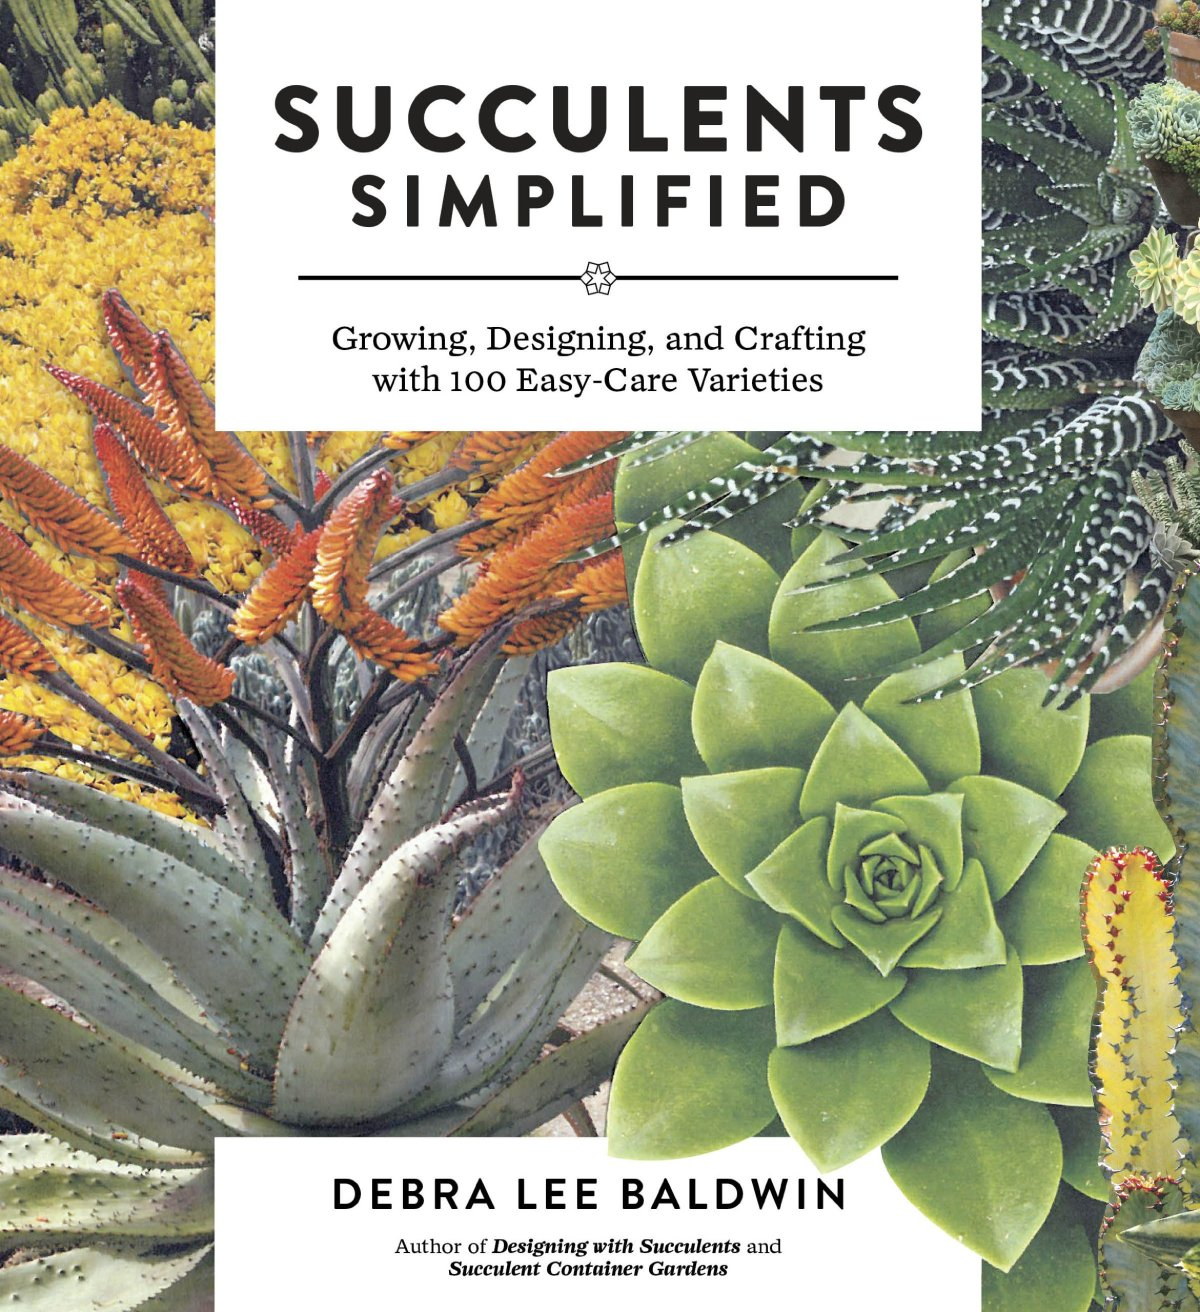 Succulents Simplified by Debra Lee Baldwin